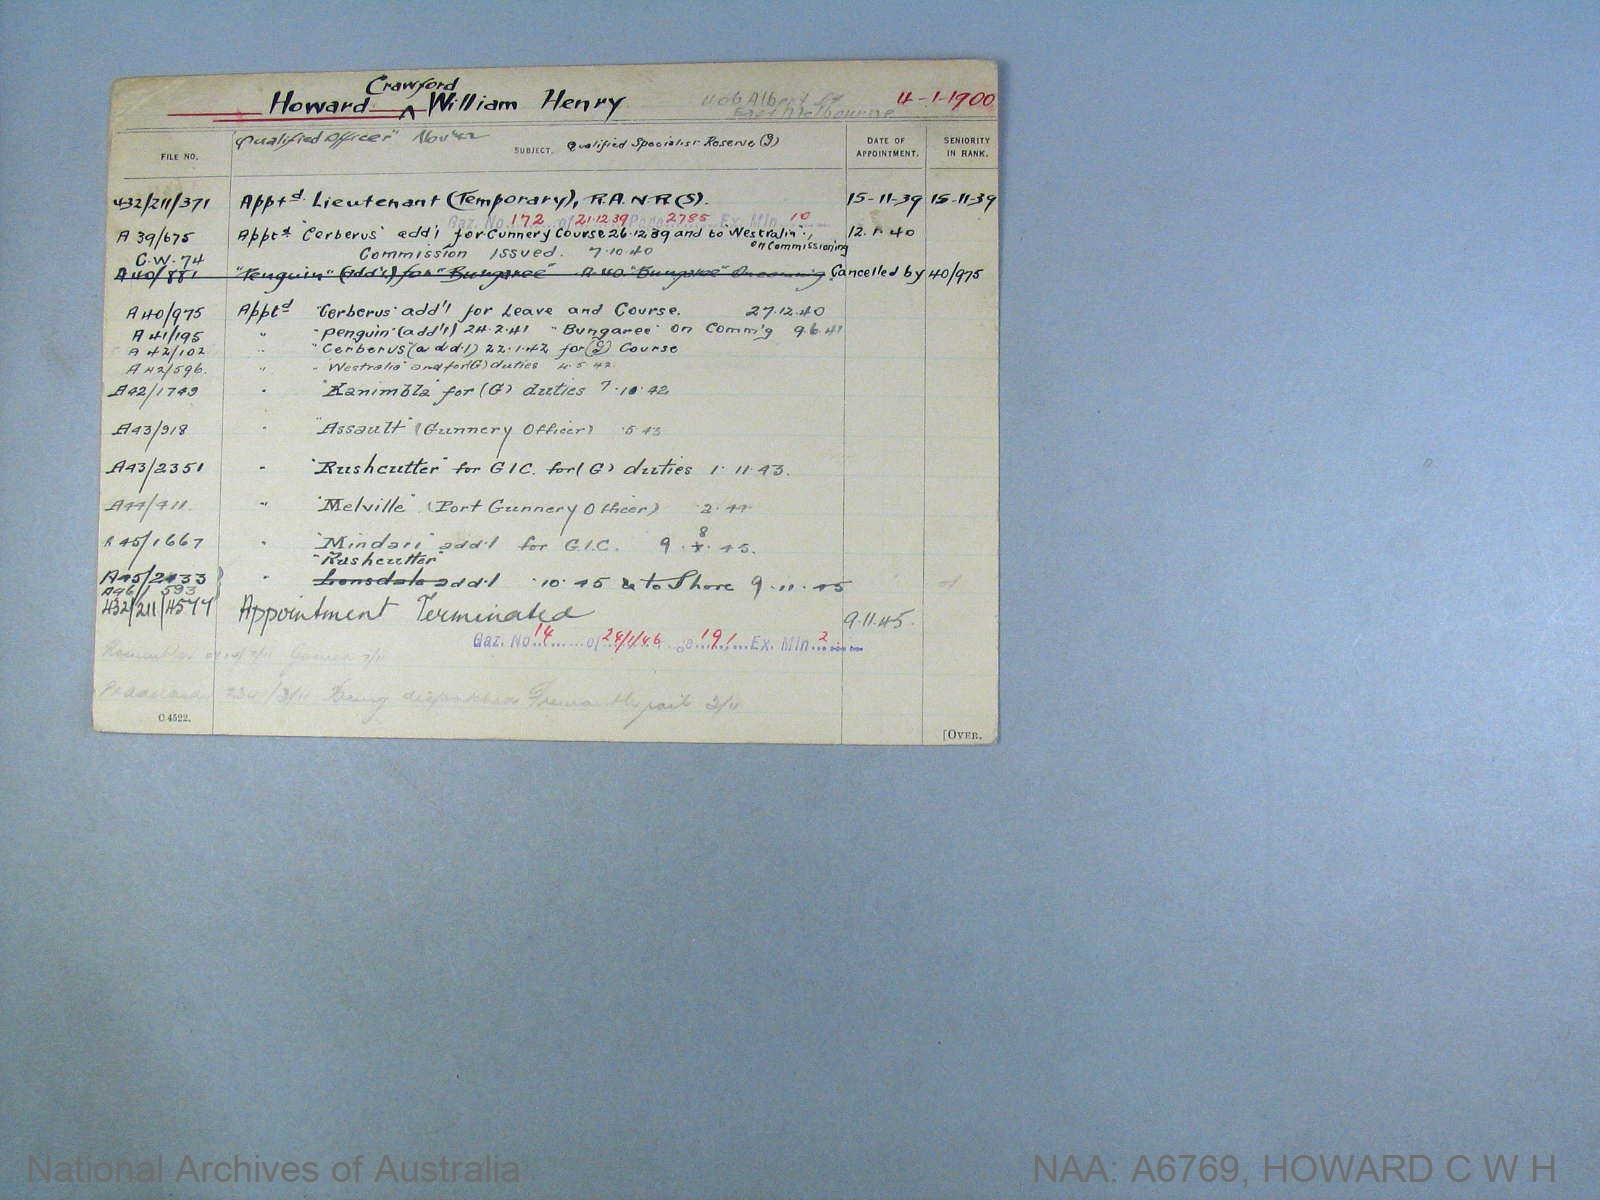 HOWARD CRAWFORD WILLIAM HENRY : Date of birth - 04 Jan 1900 : Place of birth - BANGOR IRELAND : Place of enlistment - Unknown : Next of Kin - MARION